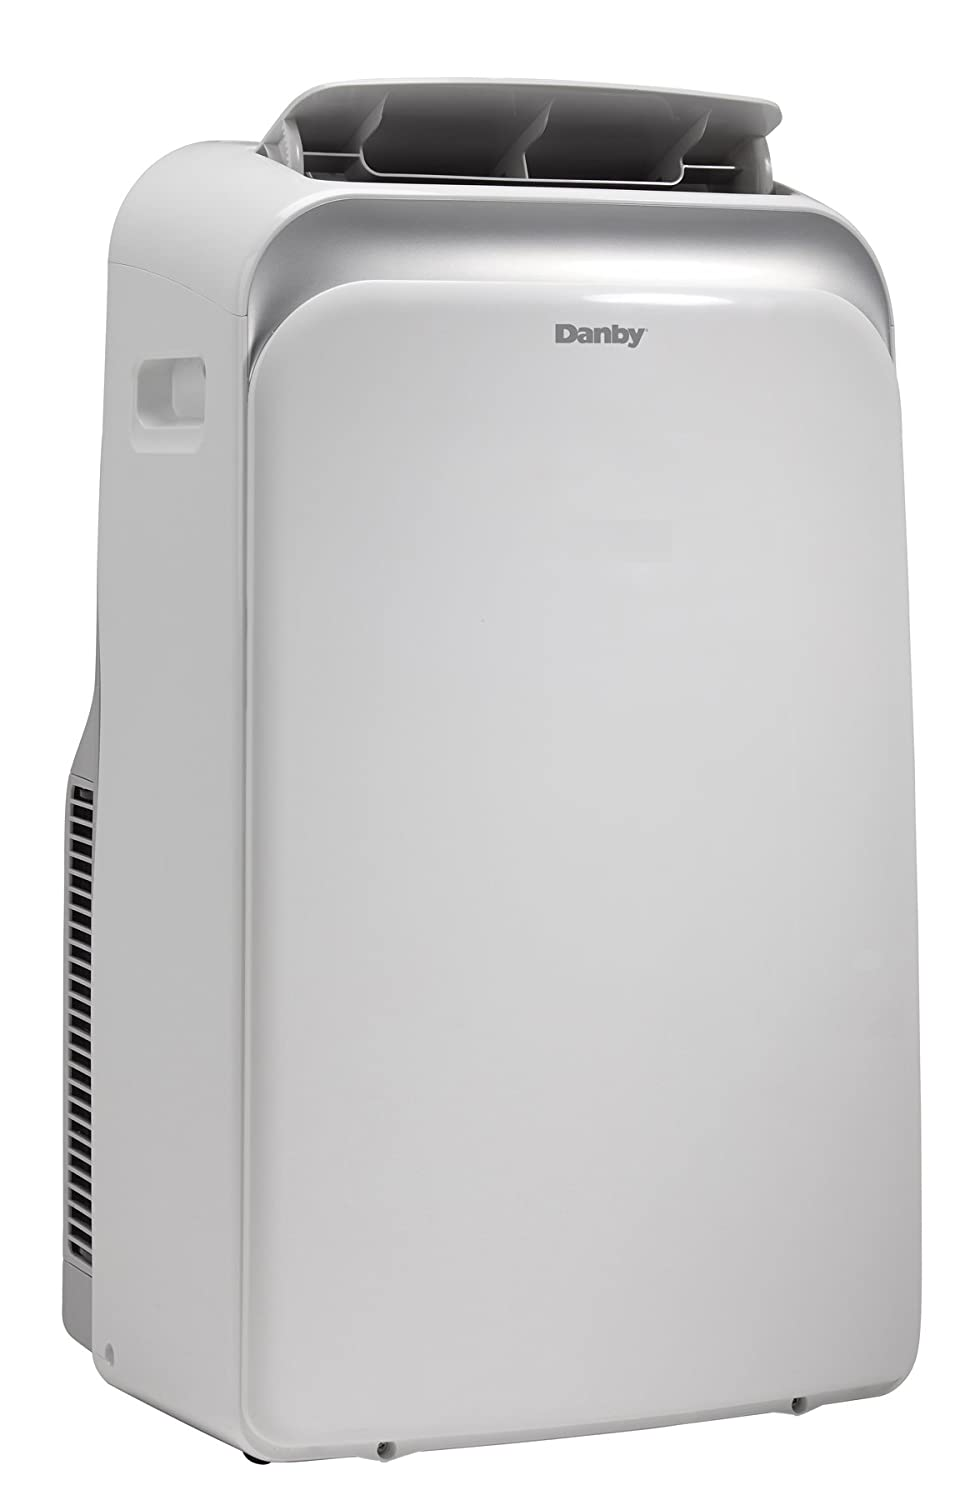 Danby 12000 btu 3 in 1 portable air conditioner 12 000 btu for 12000 btu window air conditioner room size